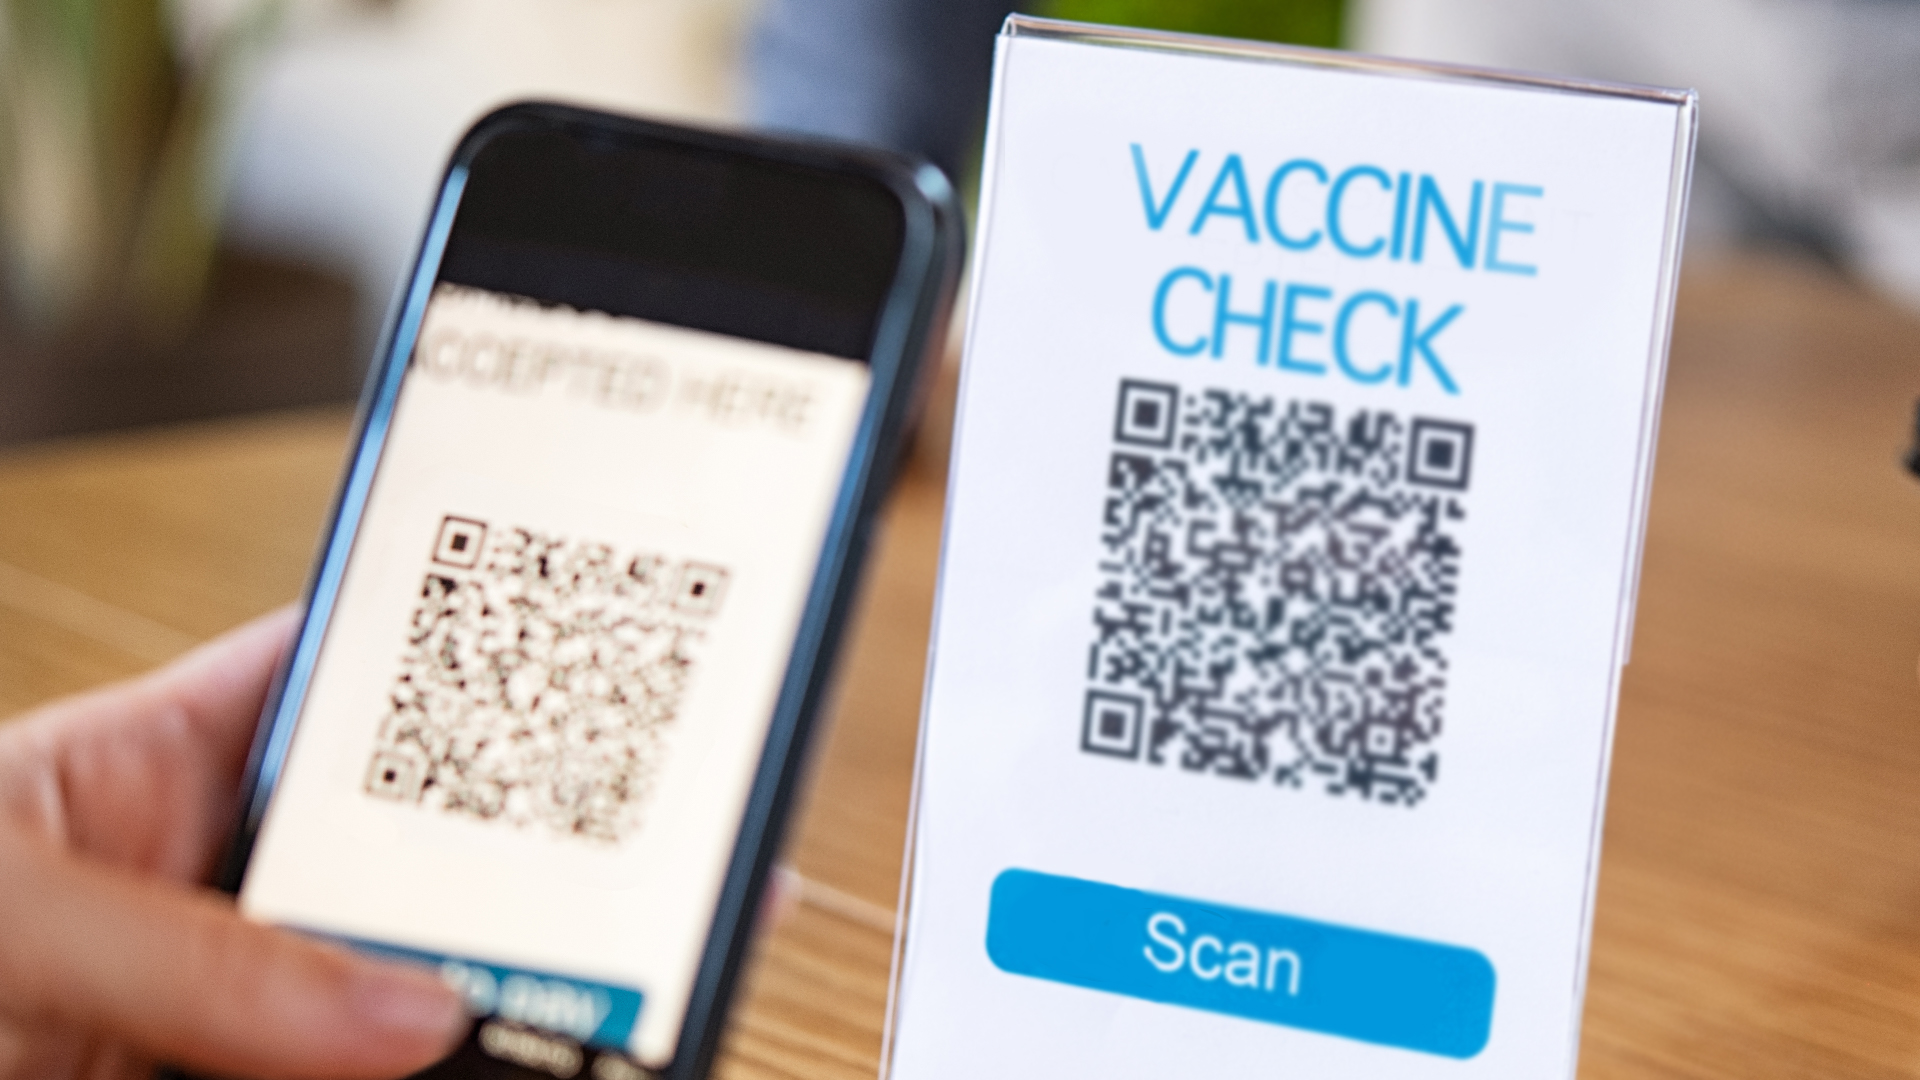 Quebec to issue digital proof of vaccination through QR codes